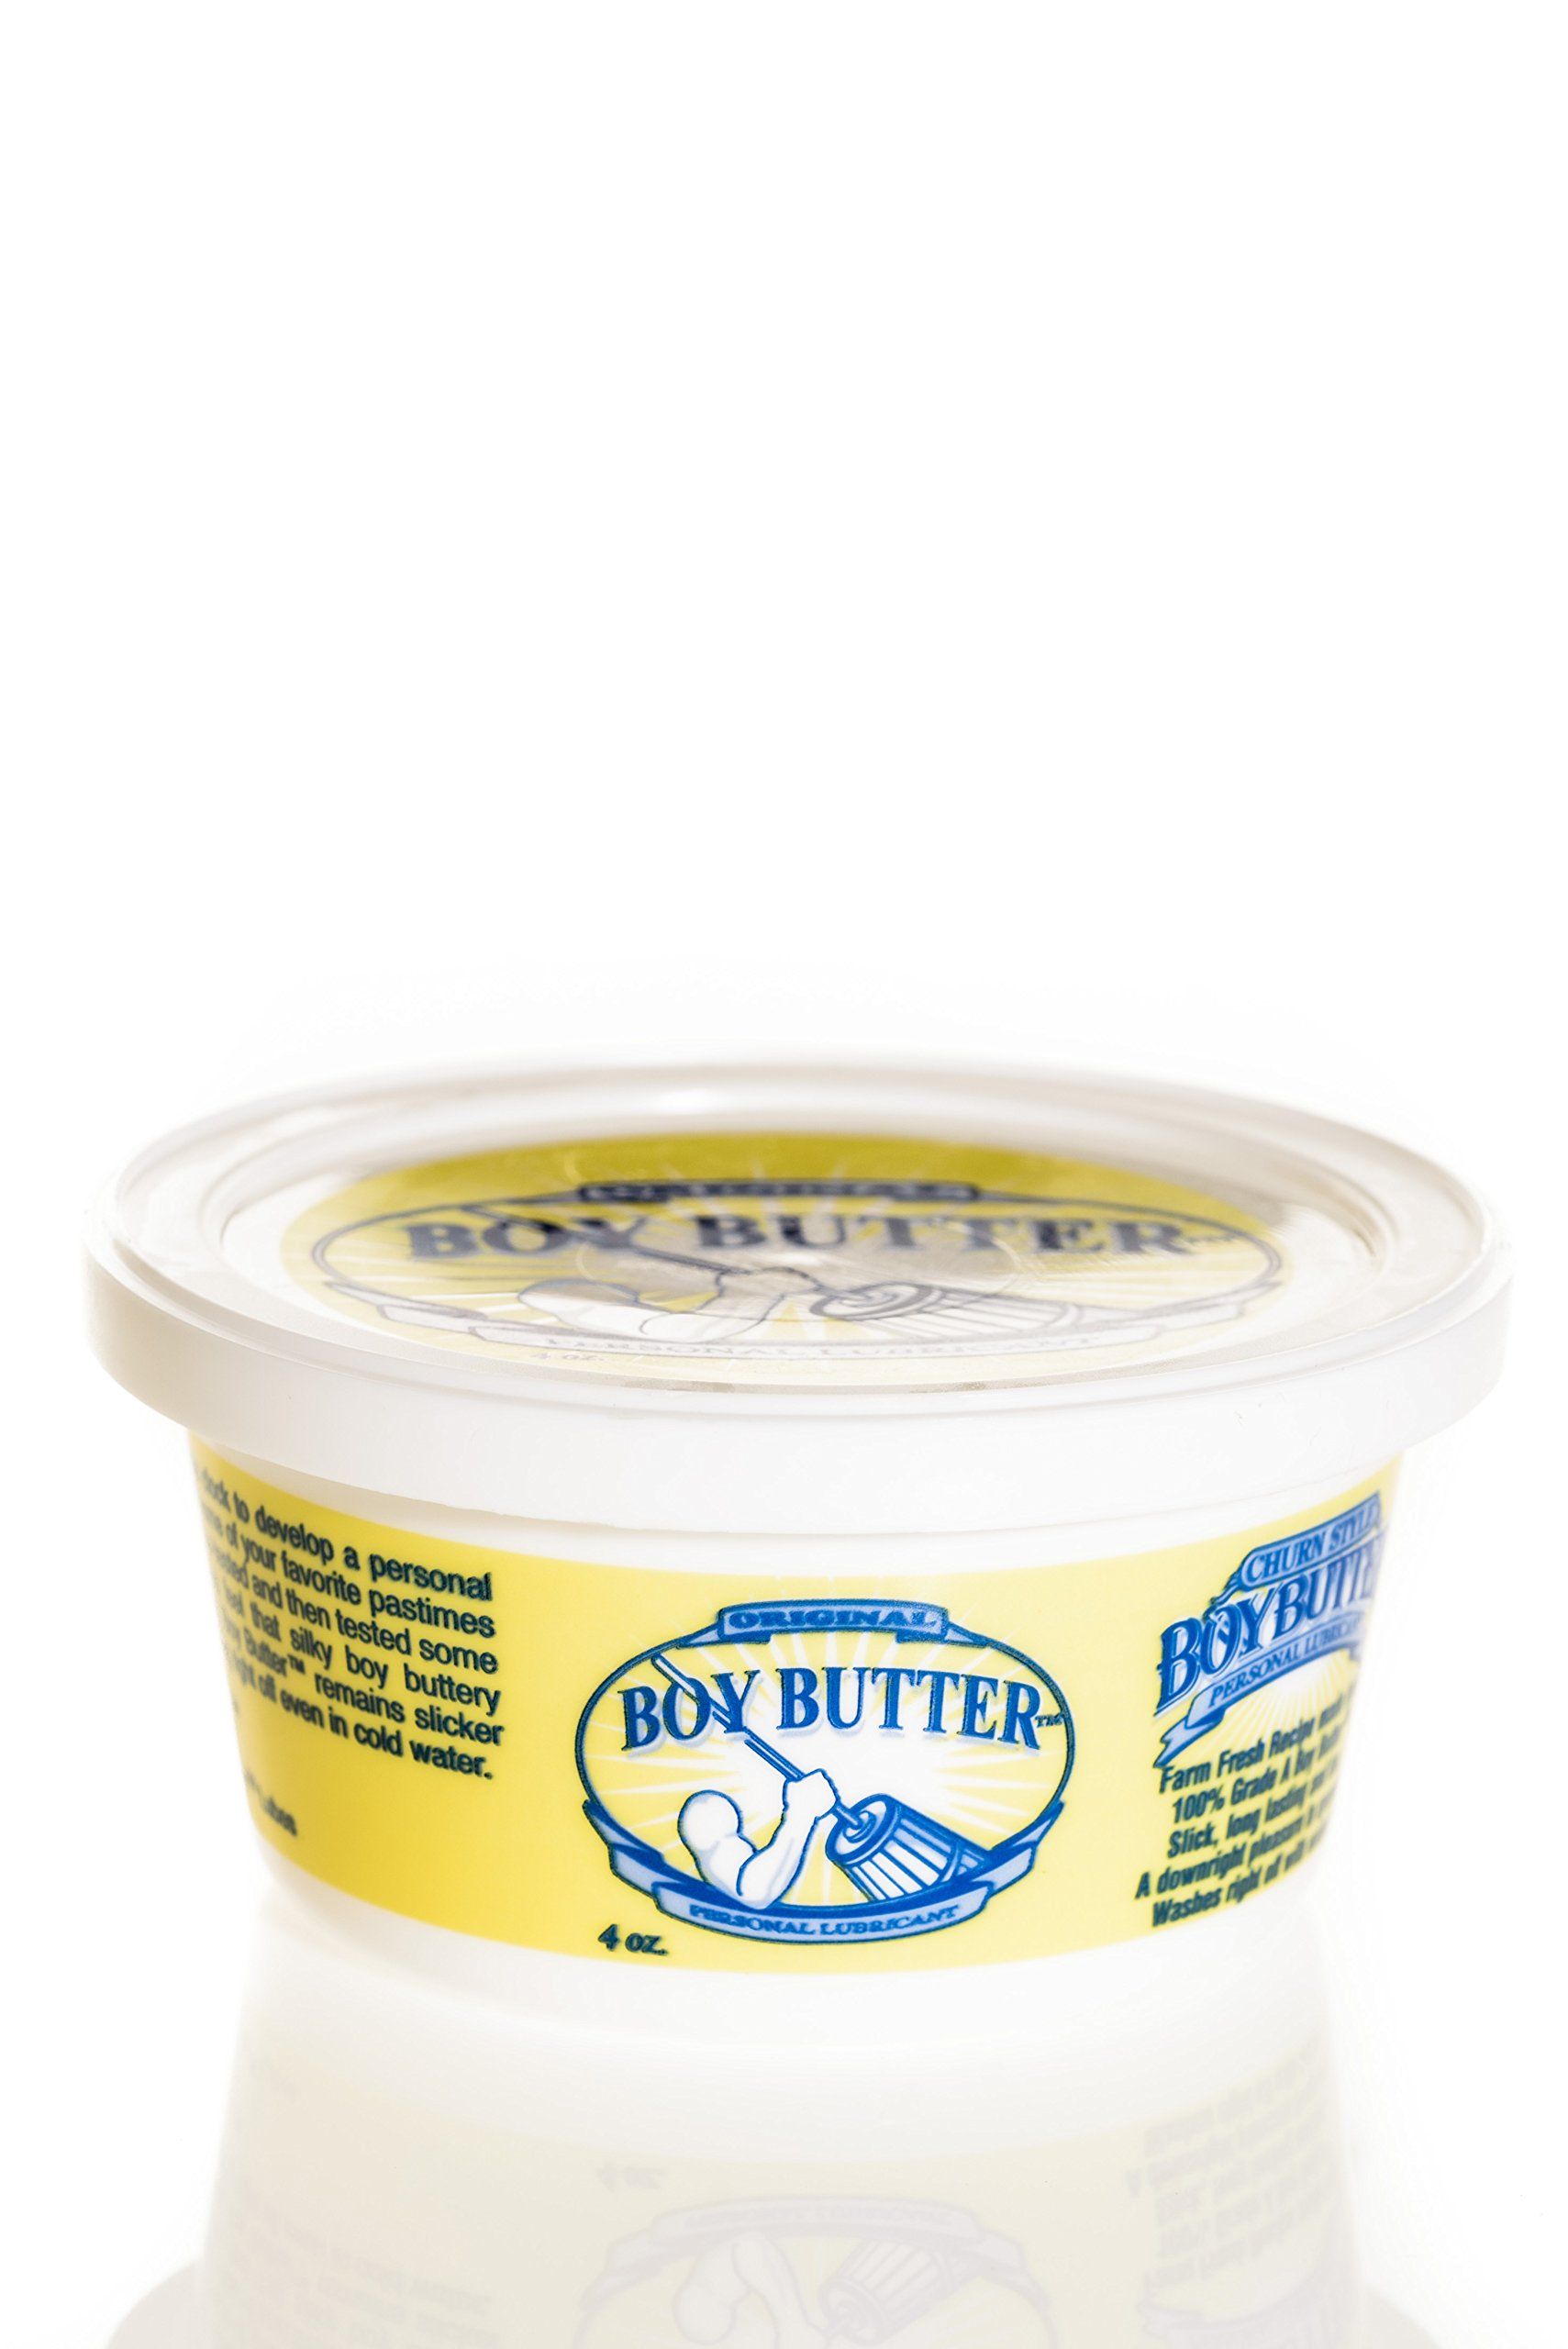 Boy Butter 4 Ounce Tub Personal Lubricant | Natural Coconut Oil & Organic Silicone | Non Staining, Washable & Slick Lube for Adults | Original Formula Oil Based Cream Made in The USA